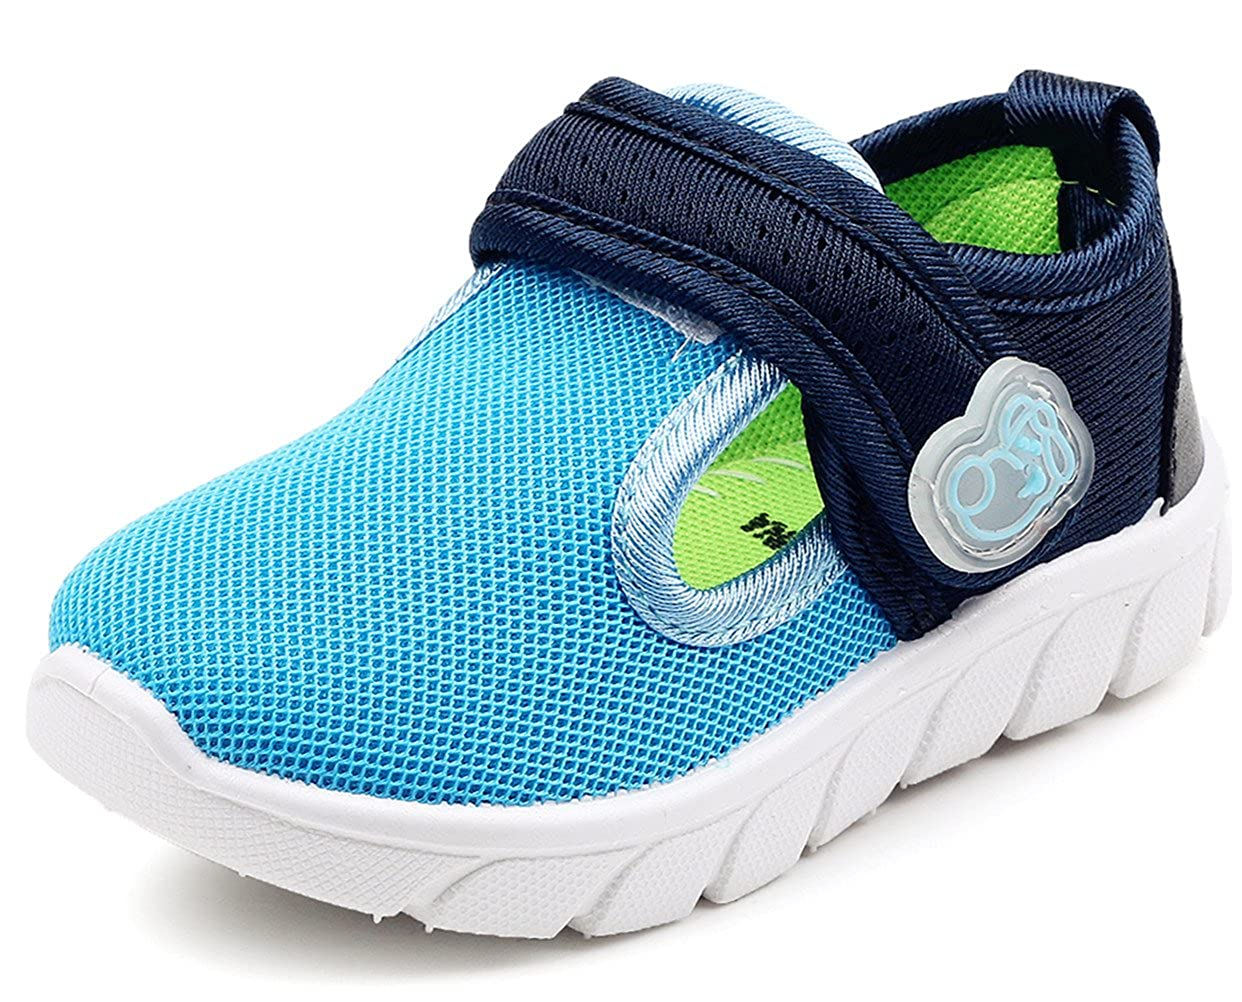 DADAWEN Baby's Boy's Girl's Breathable Strap Light Weight Casual Sneakers Running Shoes 71184